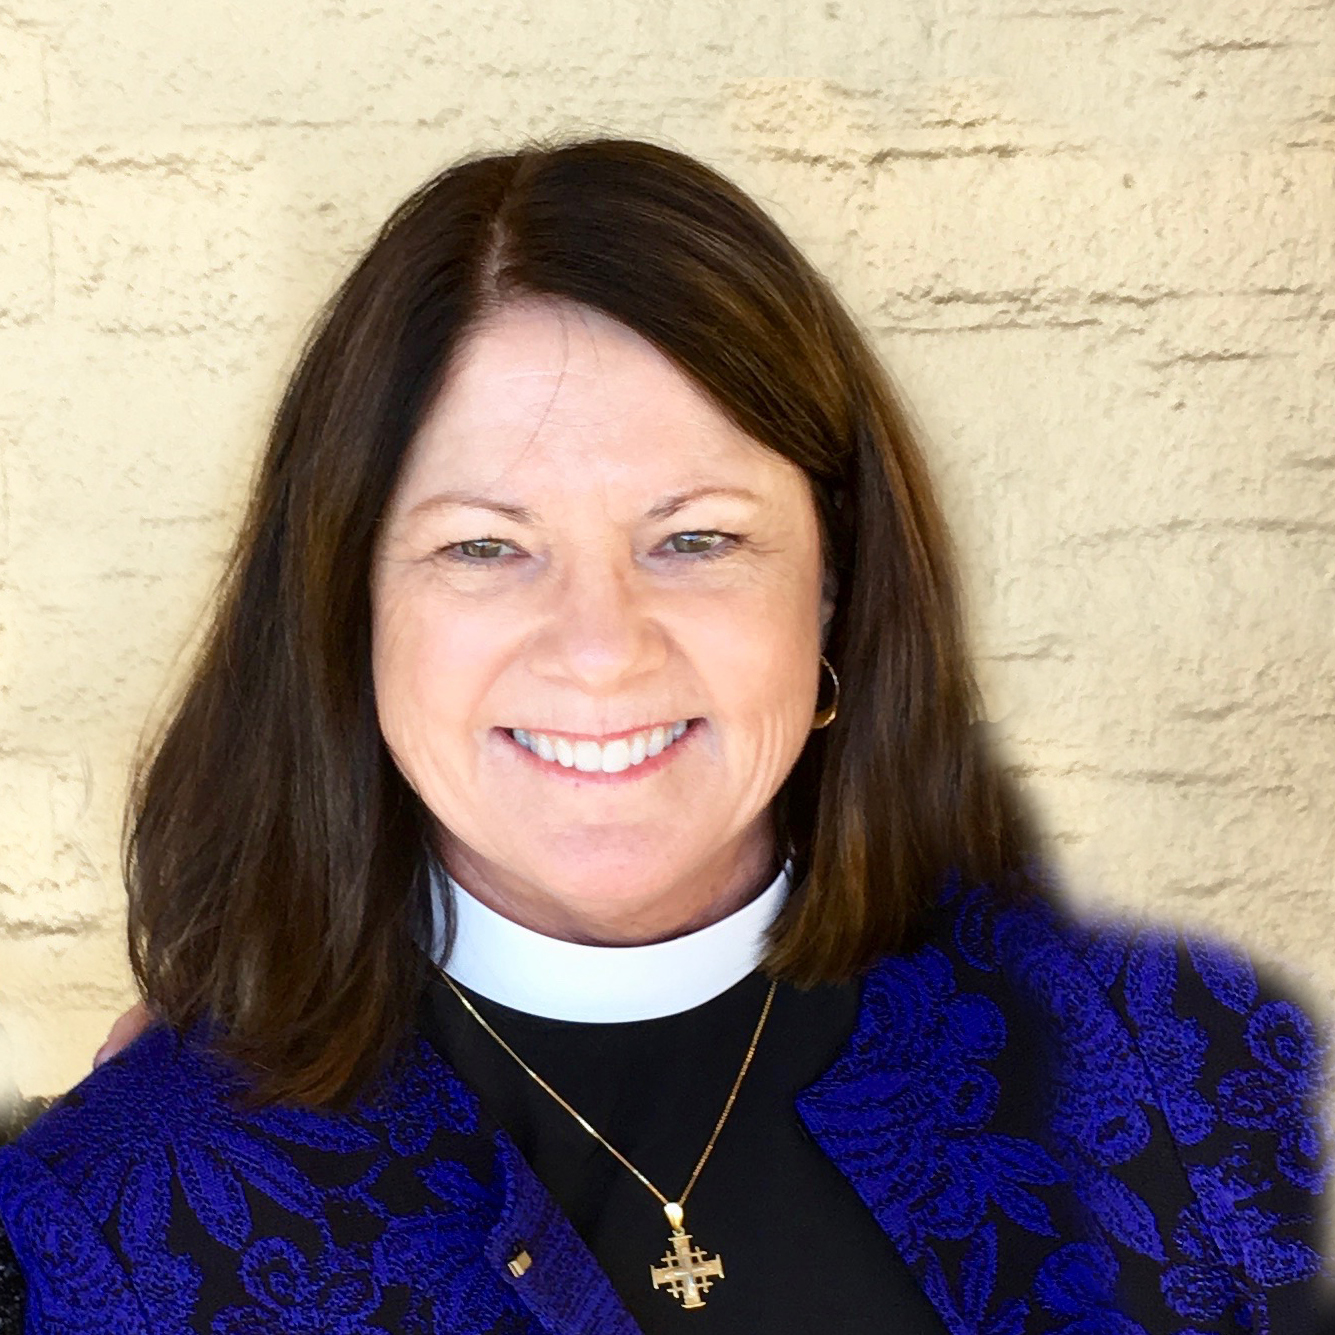 The Rev. Patti Angelo